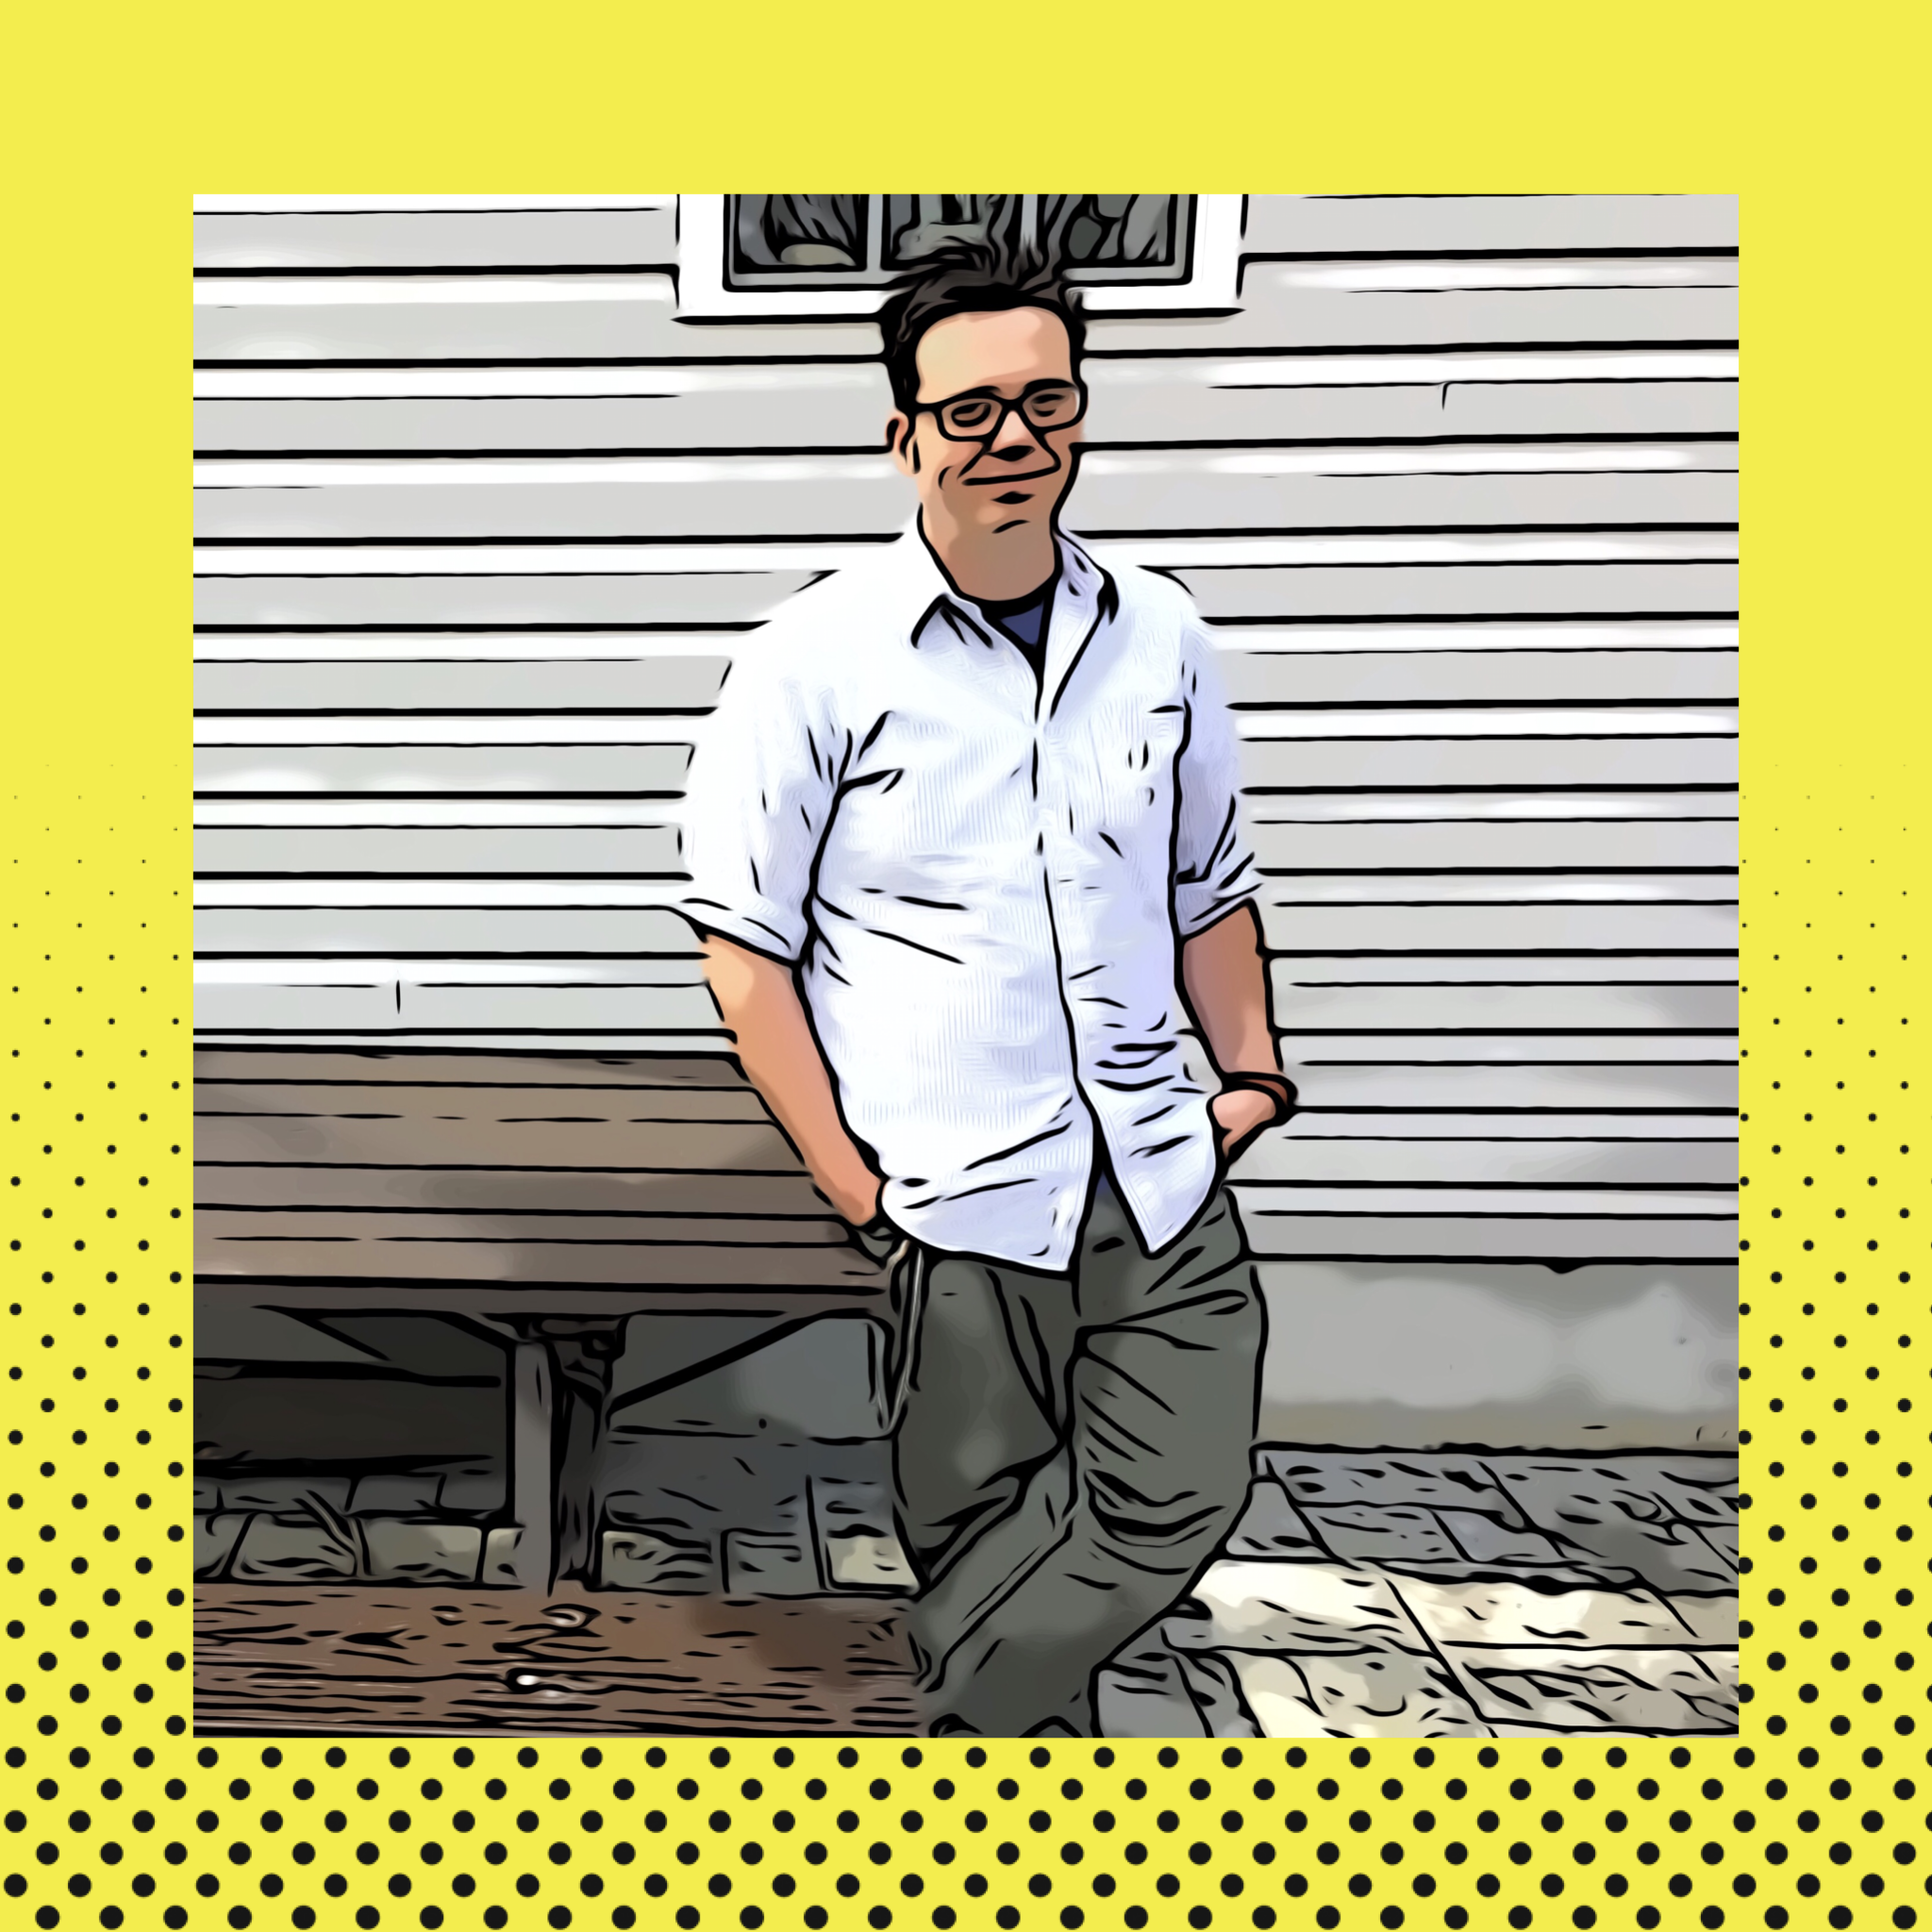 """Jon """"Sketch"""" Achelpohl   Jon is a Midwest transplant and an illustrator and comic book artist. He's an activist and volunteers with The Virginia Democrats."""